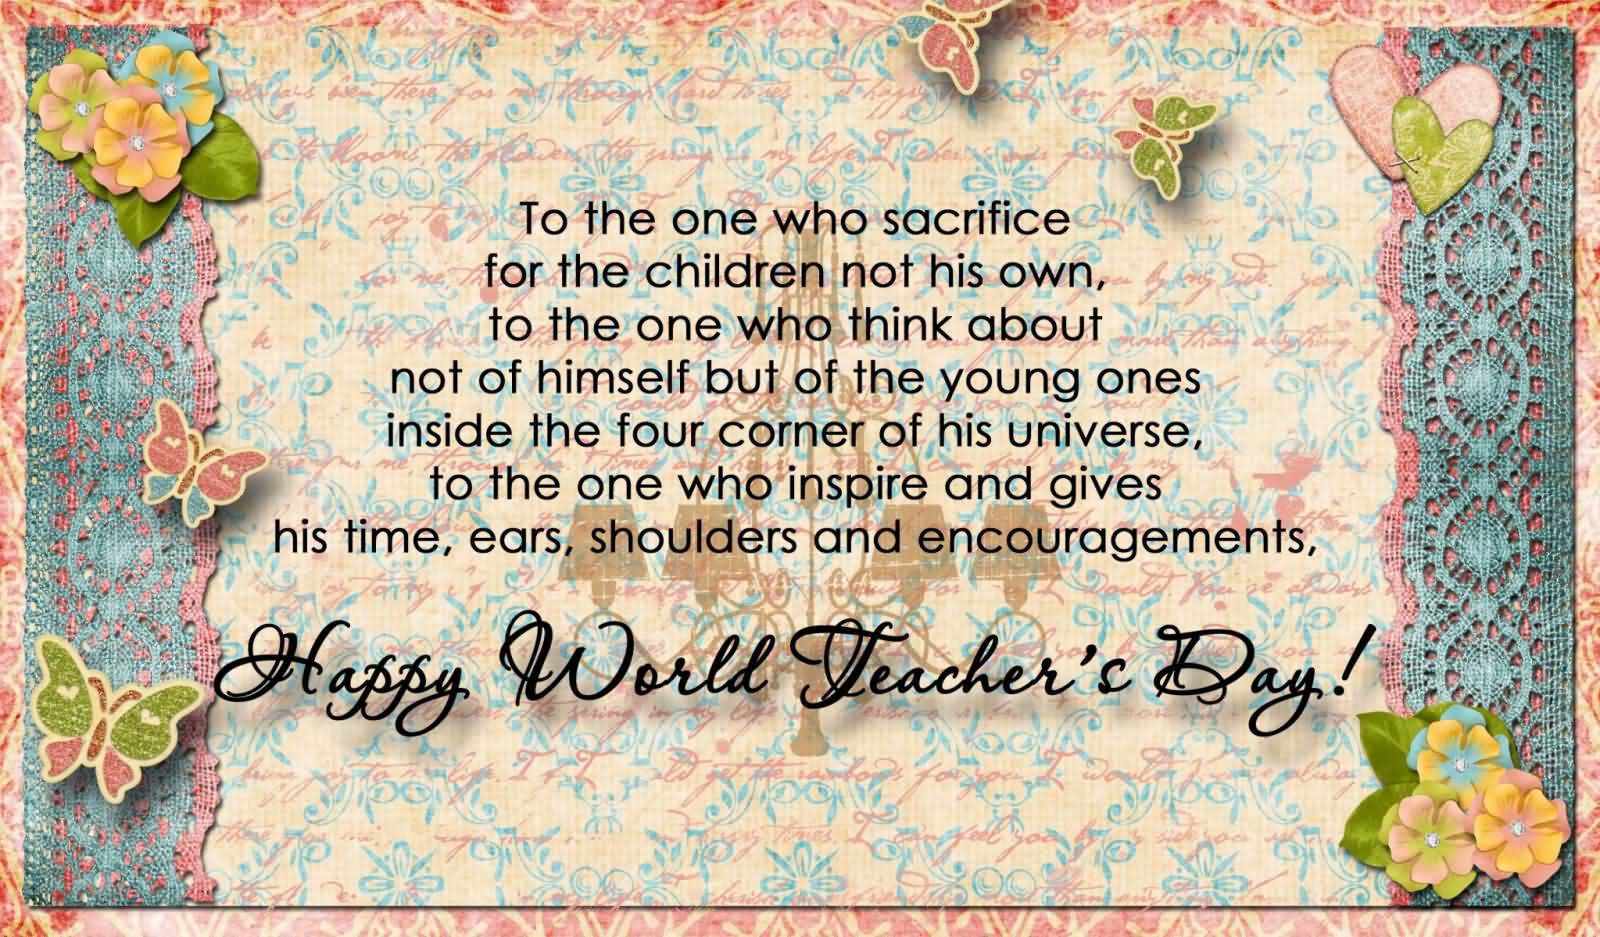 50 world teachers day wishes pictures happy world teachers day greeting card kristyandbryce Images